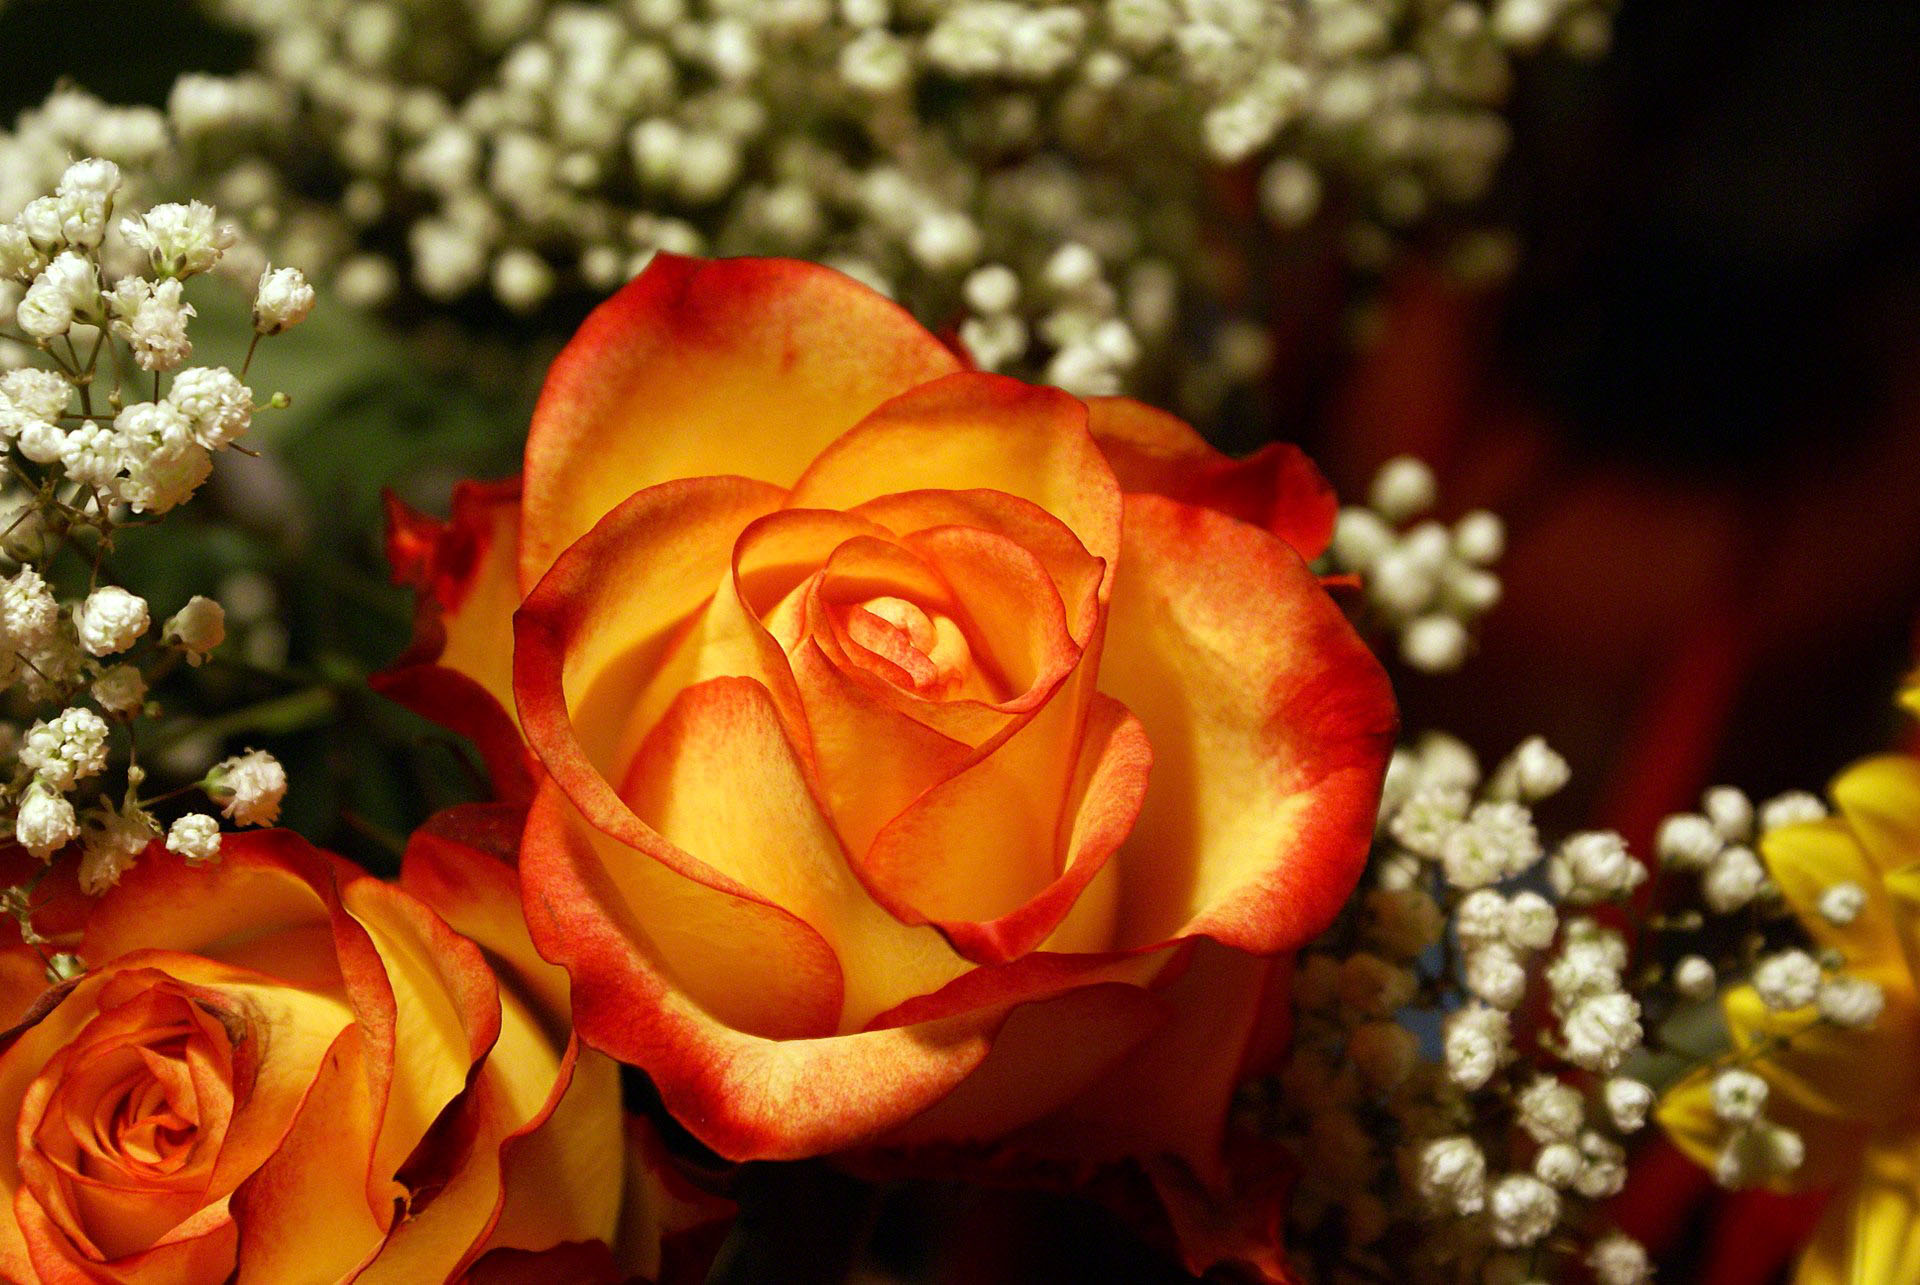 http://www.fabiovisentin.com/photography/photo/12/yellow-orange-roses-macro.jpg